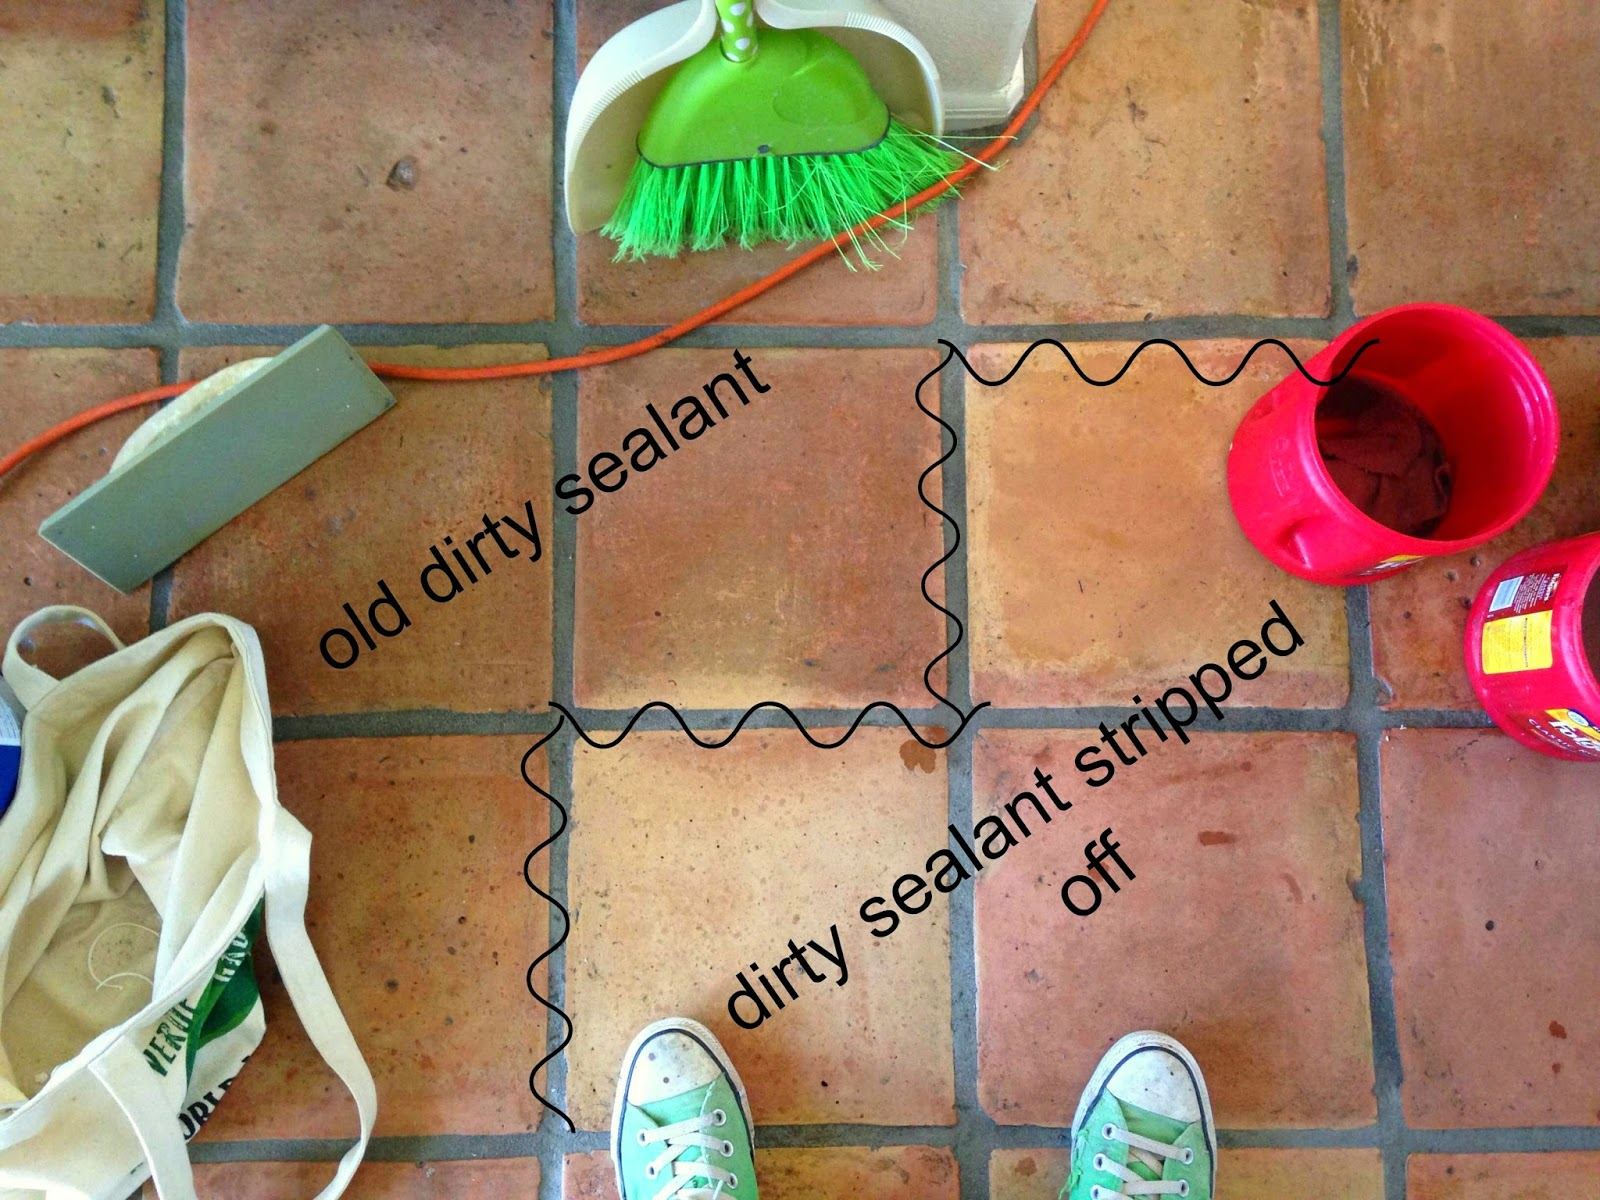 Dusty coyote stripping and sealing a saltillo tile floor hhow to strip saltillo tile floors strip saltillo tile strip terracotta tile floor doublecrazyfo Choice Image